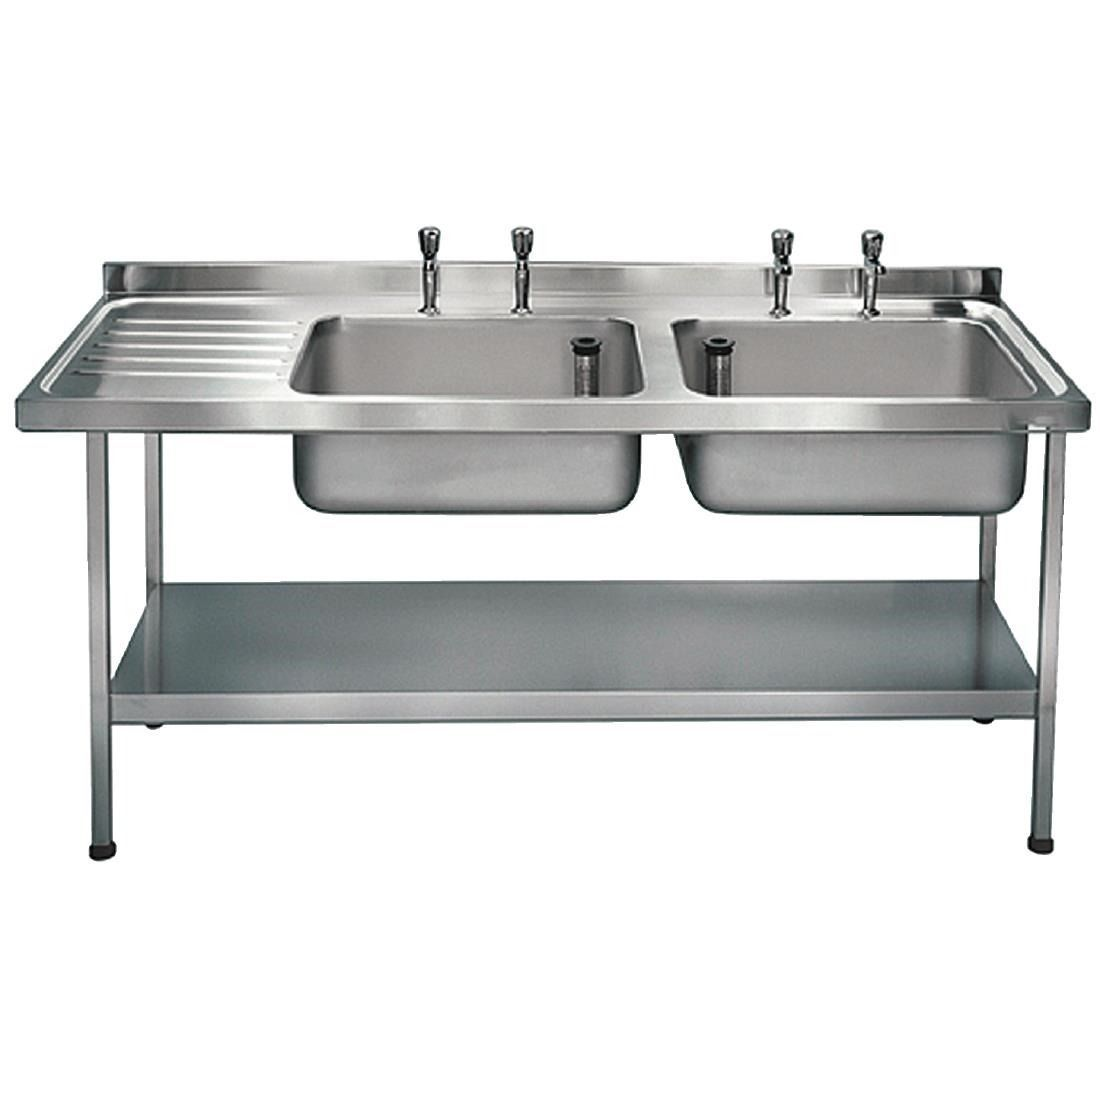 Franke Stainless Steel Double Bowl Sink Left Hand Drainer - P372